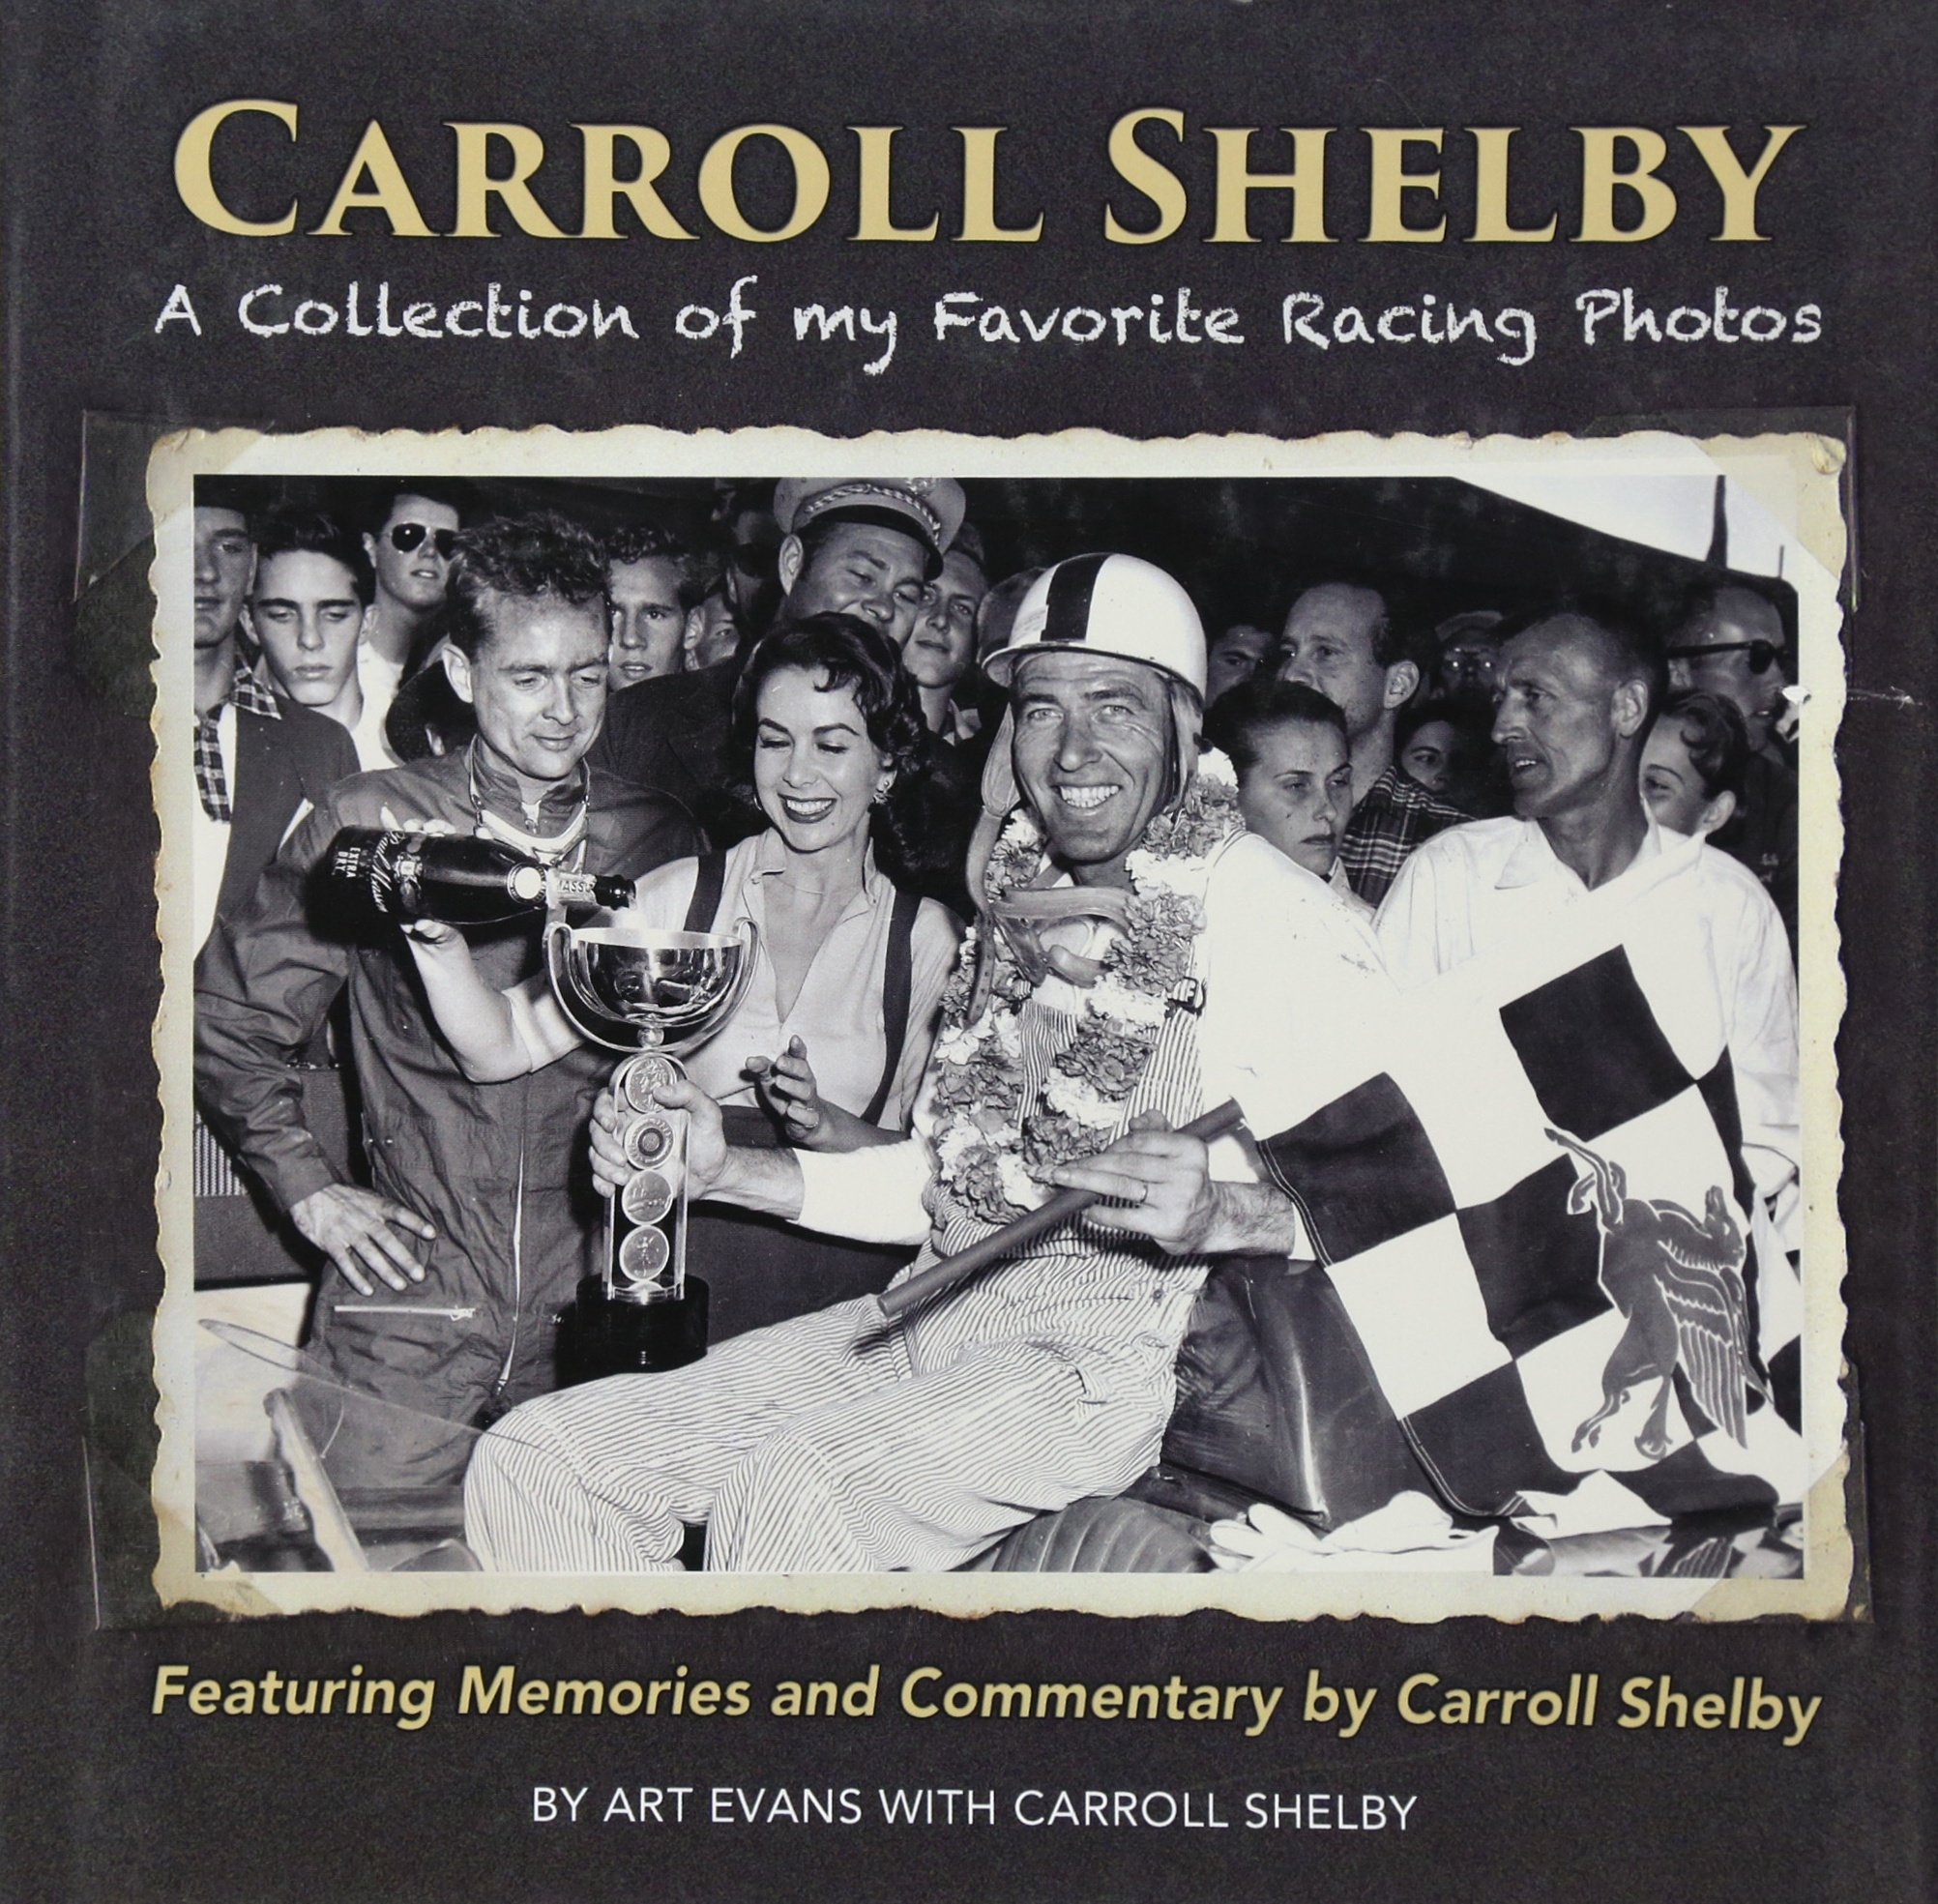 Image OfCarroll Shelby: A Collection Of My Favorite Racing Photos